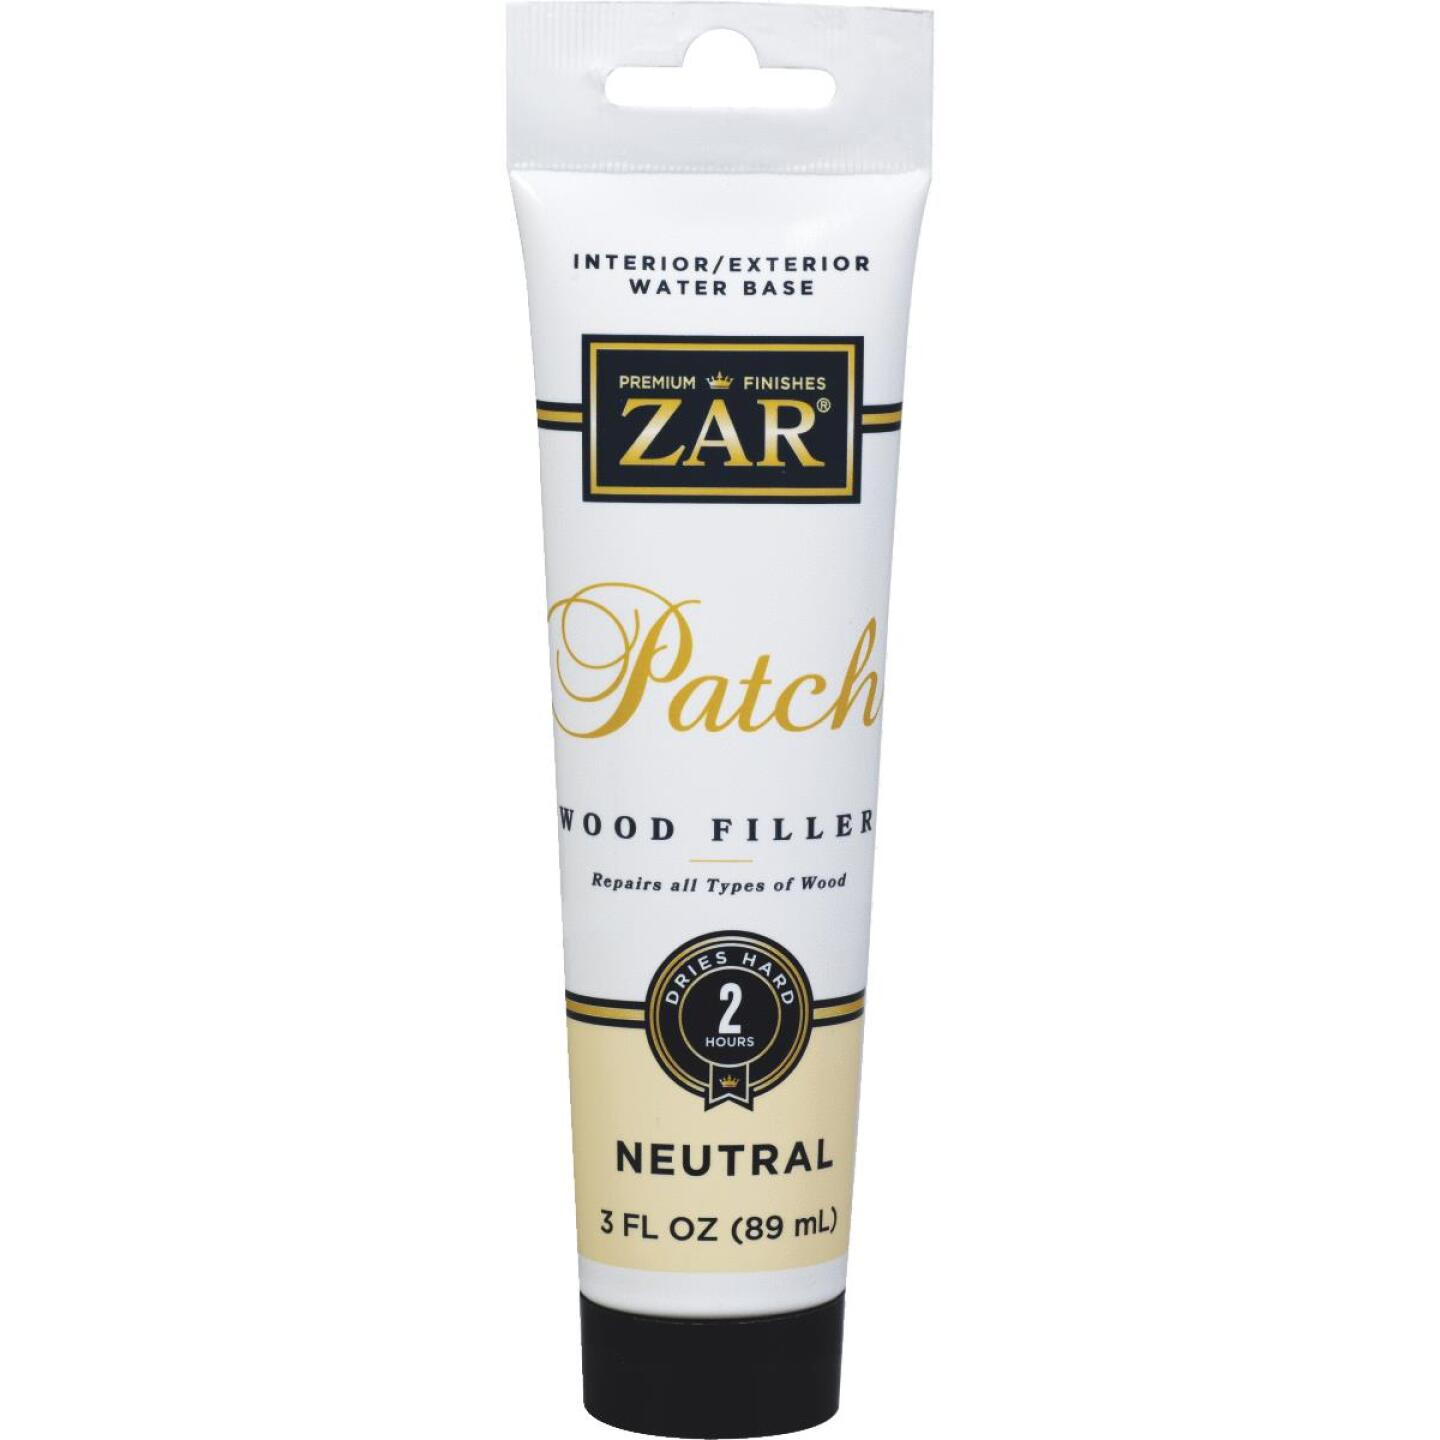 ZAR Neutral 3 Oz. Latex Wood Filler Image 1